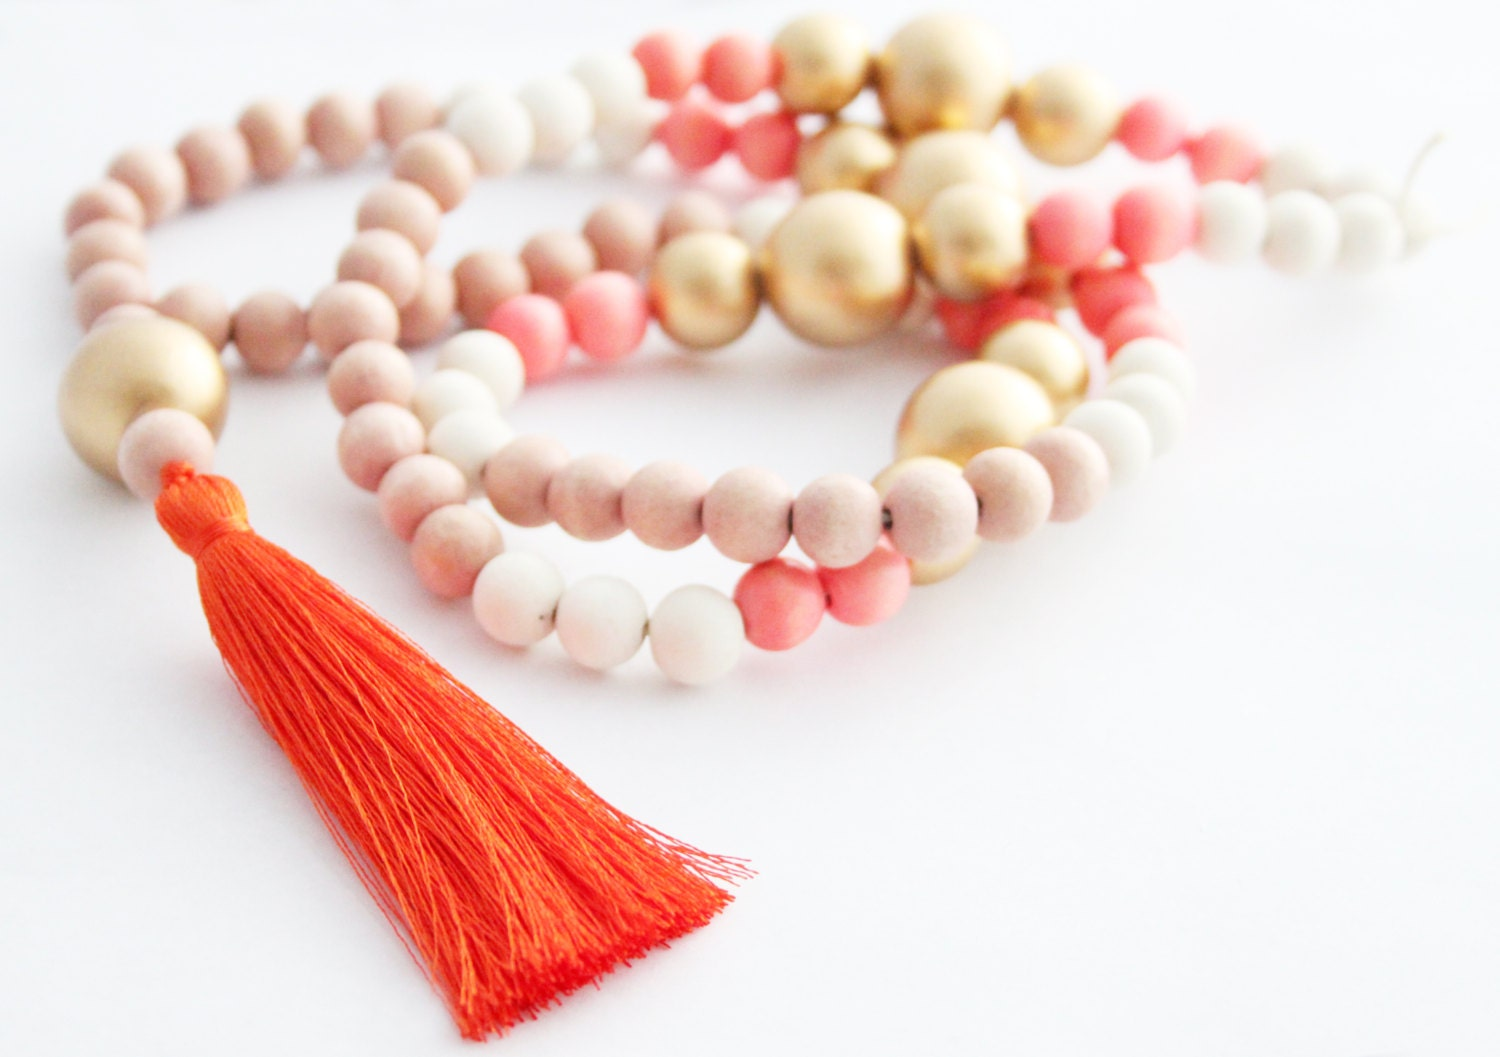 Tassel Necklace, Coral Orange and Gold Beaded Tassel Necklace, Colorful Statement Necklace, Wood Bead Tassel Necklace, Tassel Jewelry